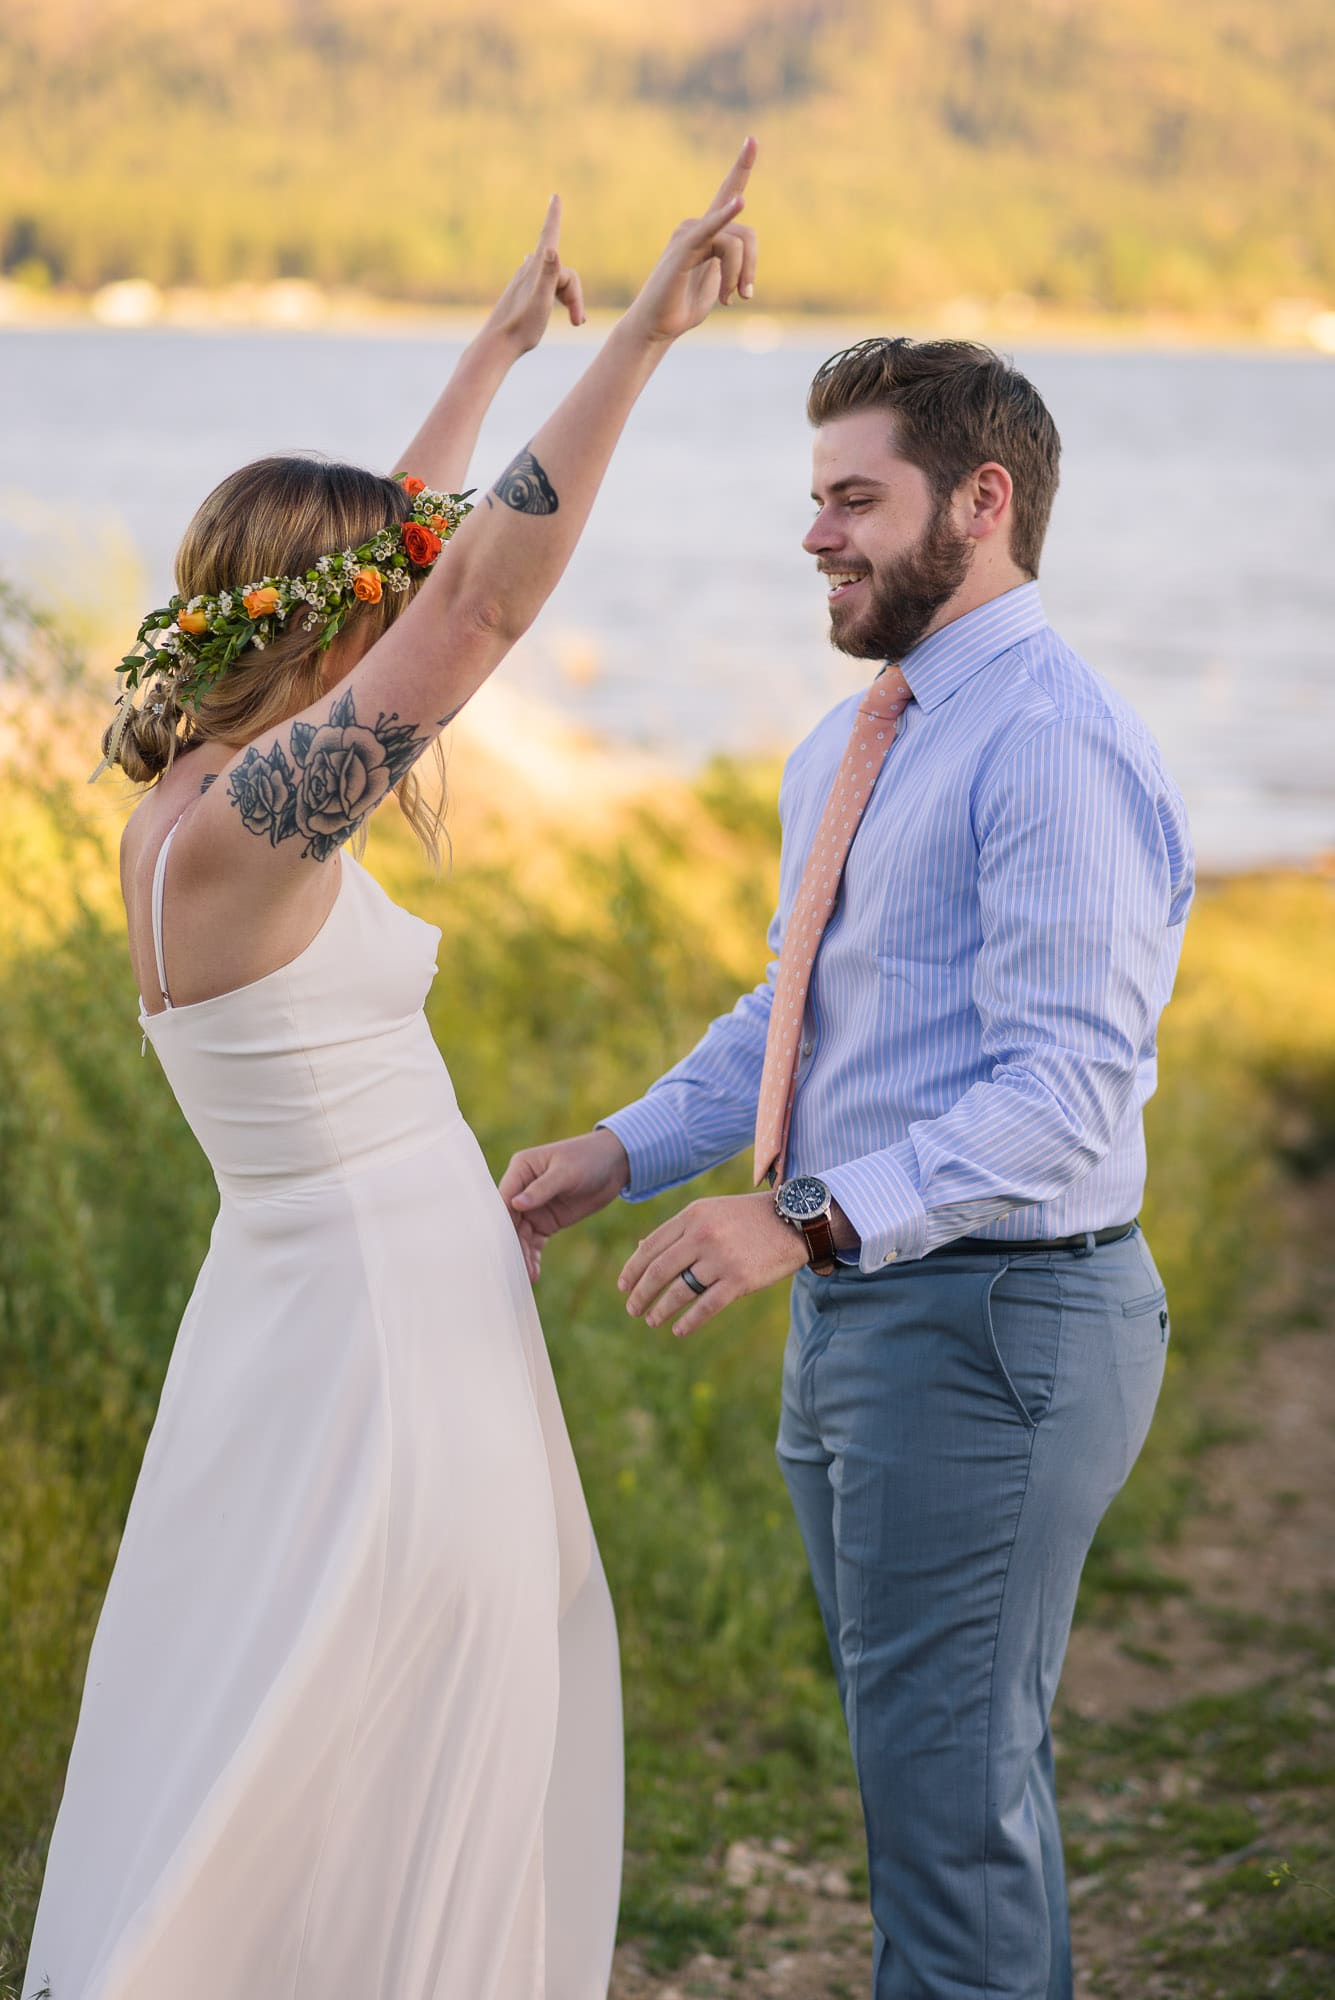 036_Alan_and_Heidi_Kensey_Josh_Big_Bear_Elopement